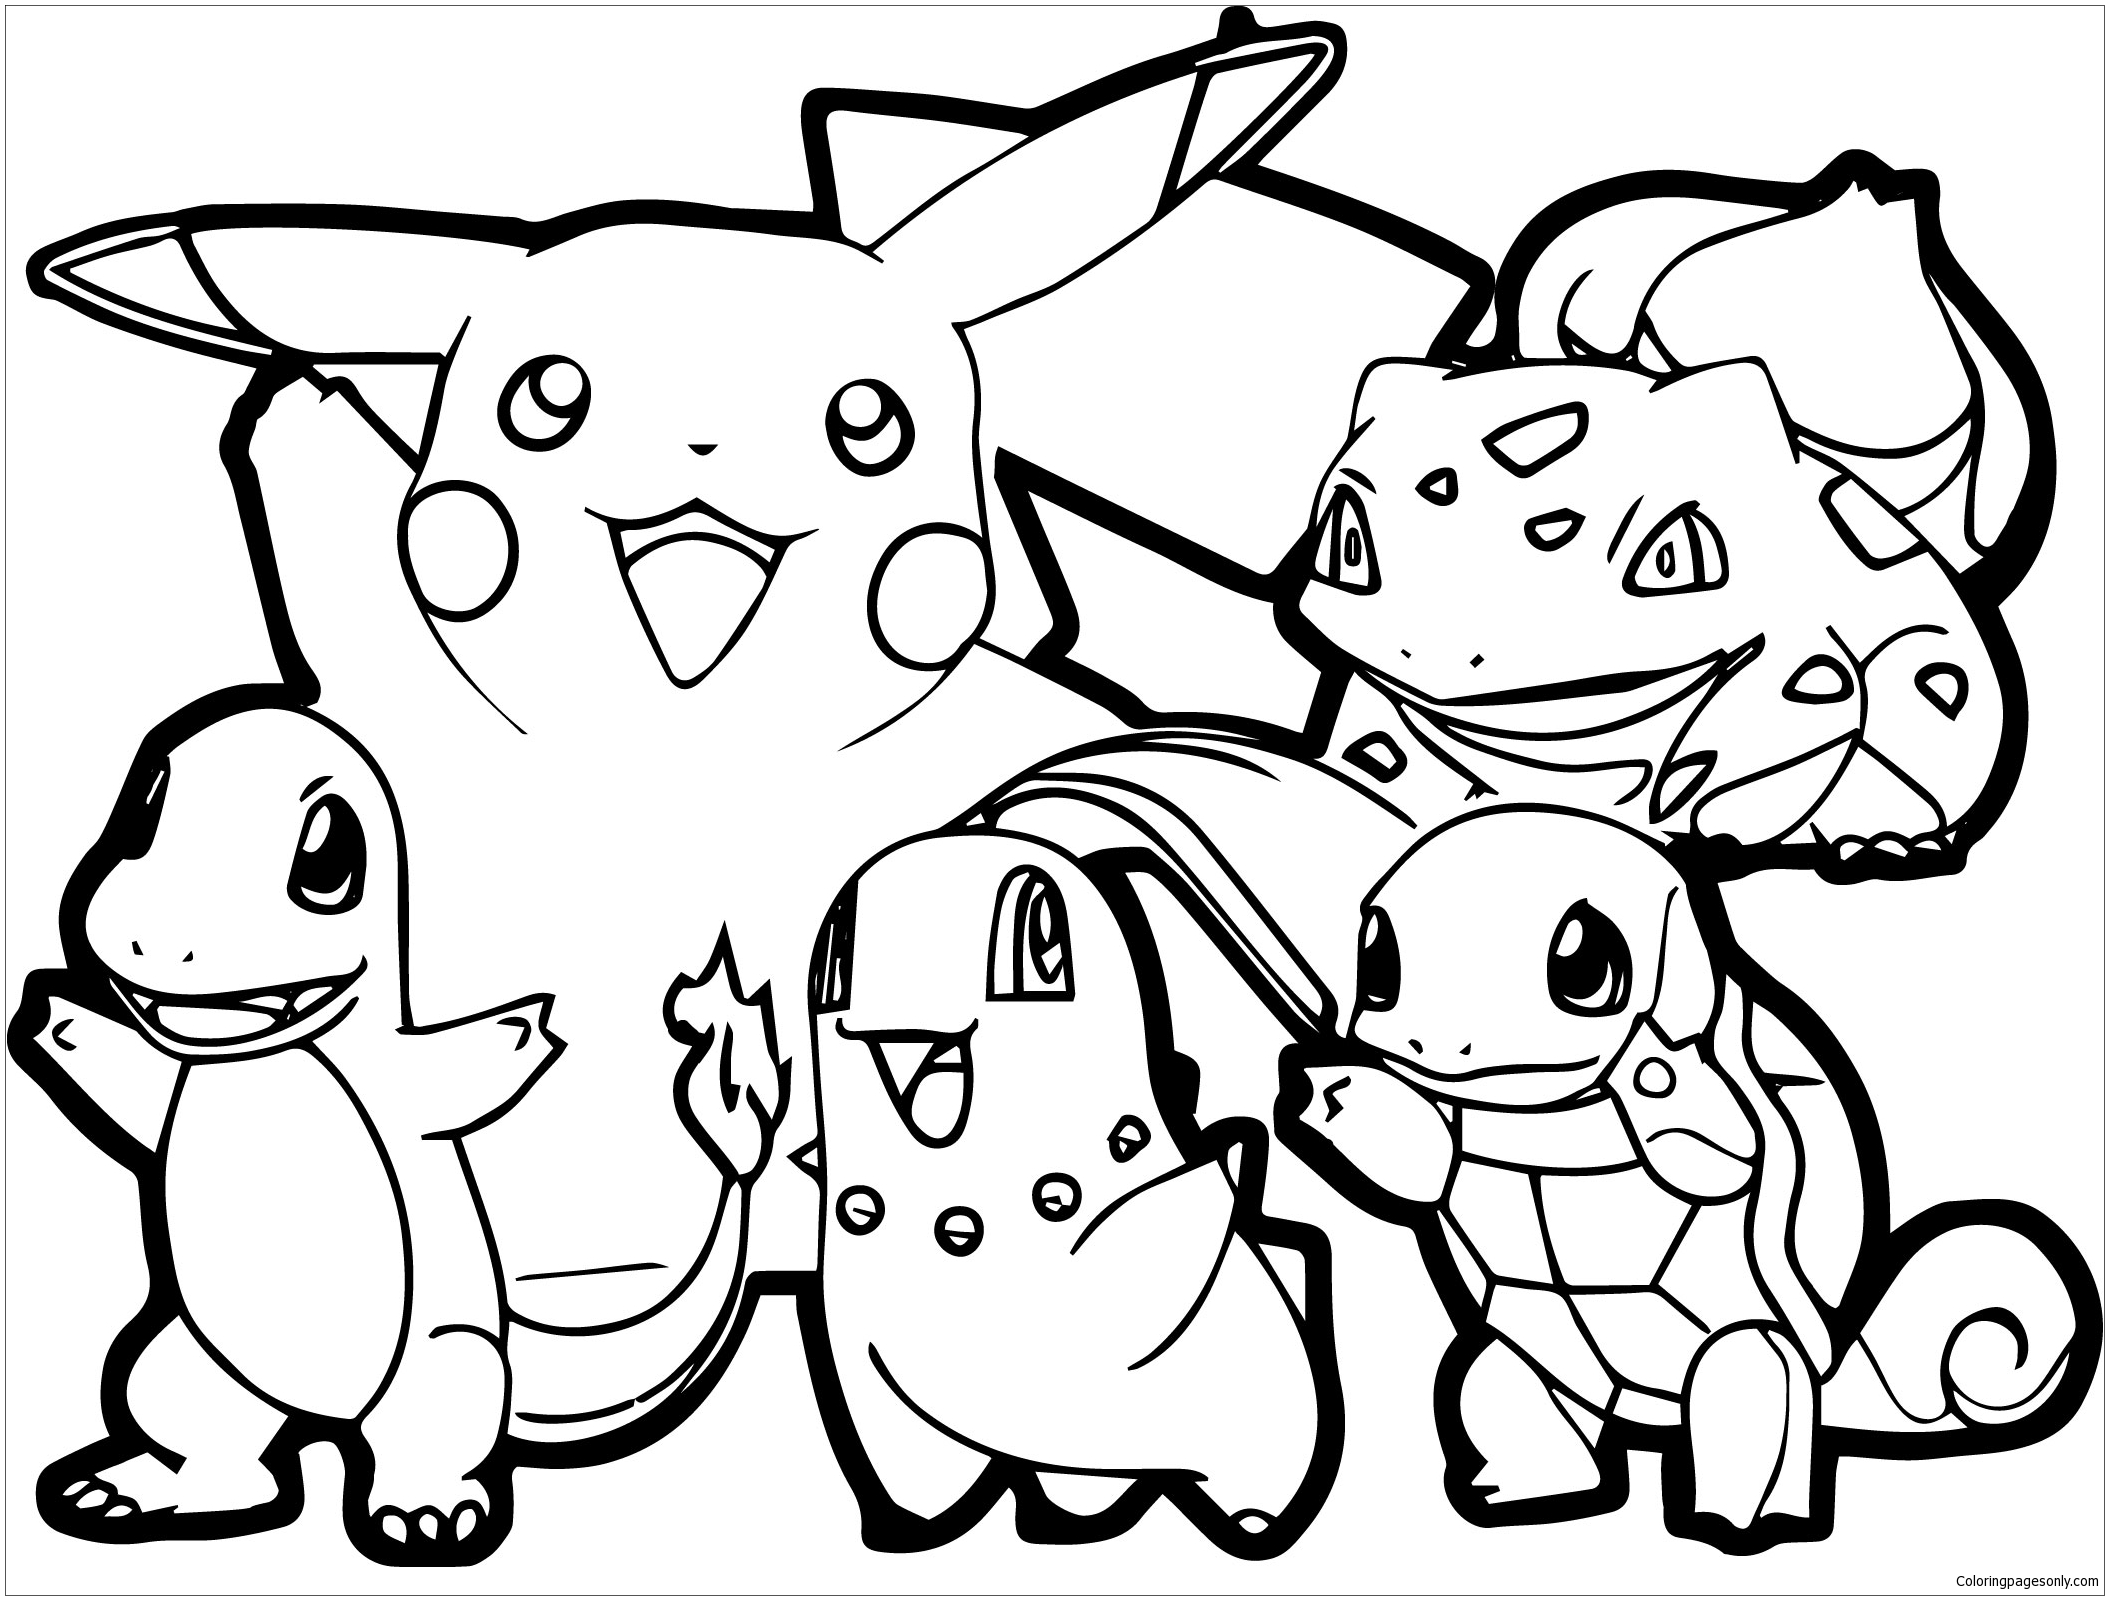 pokemon color 29 pokemon coloring pages charizard download coloring sheets pokemon color